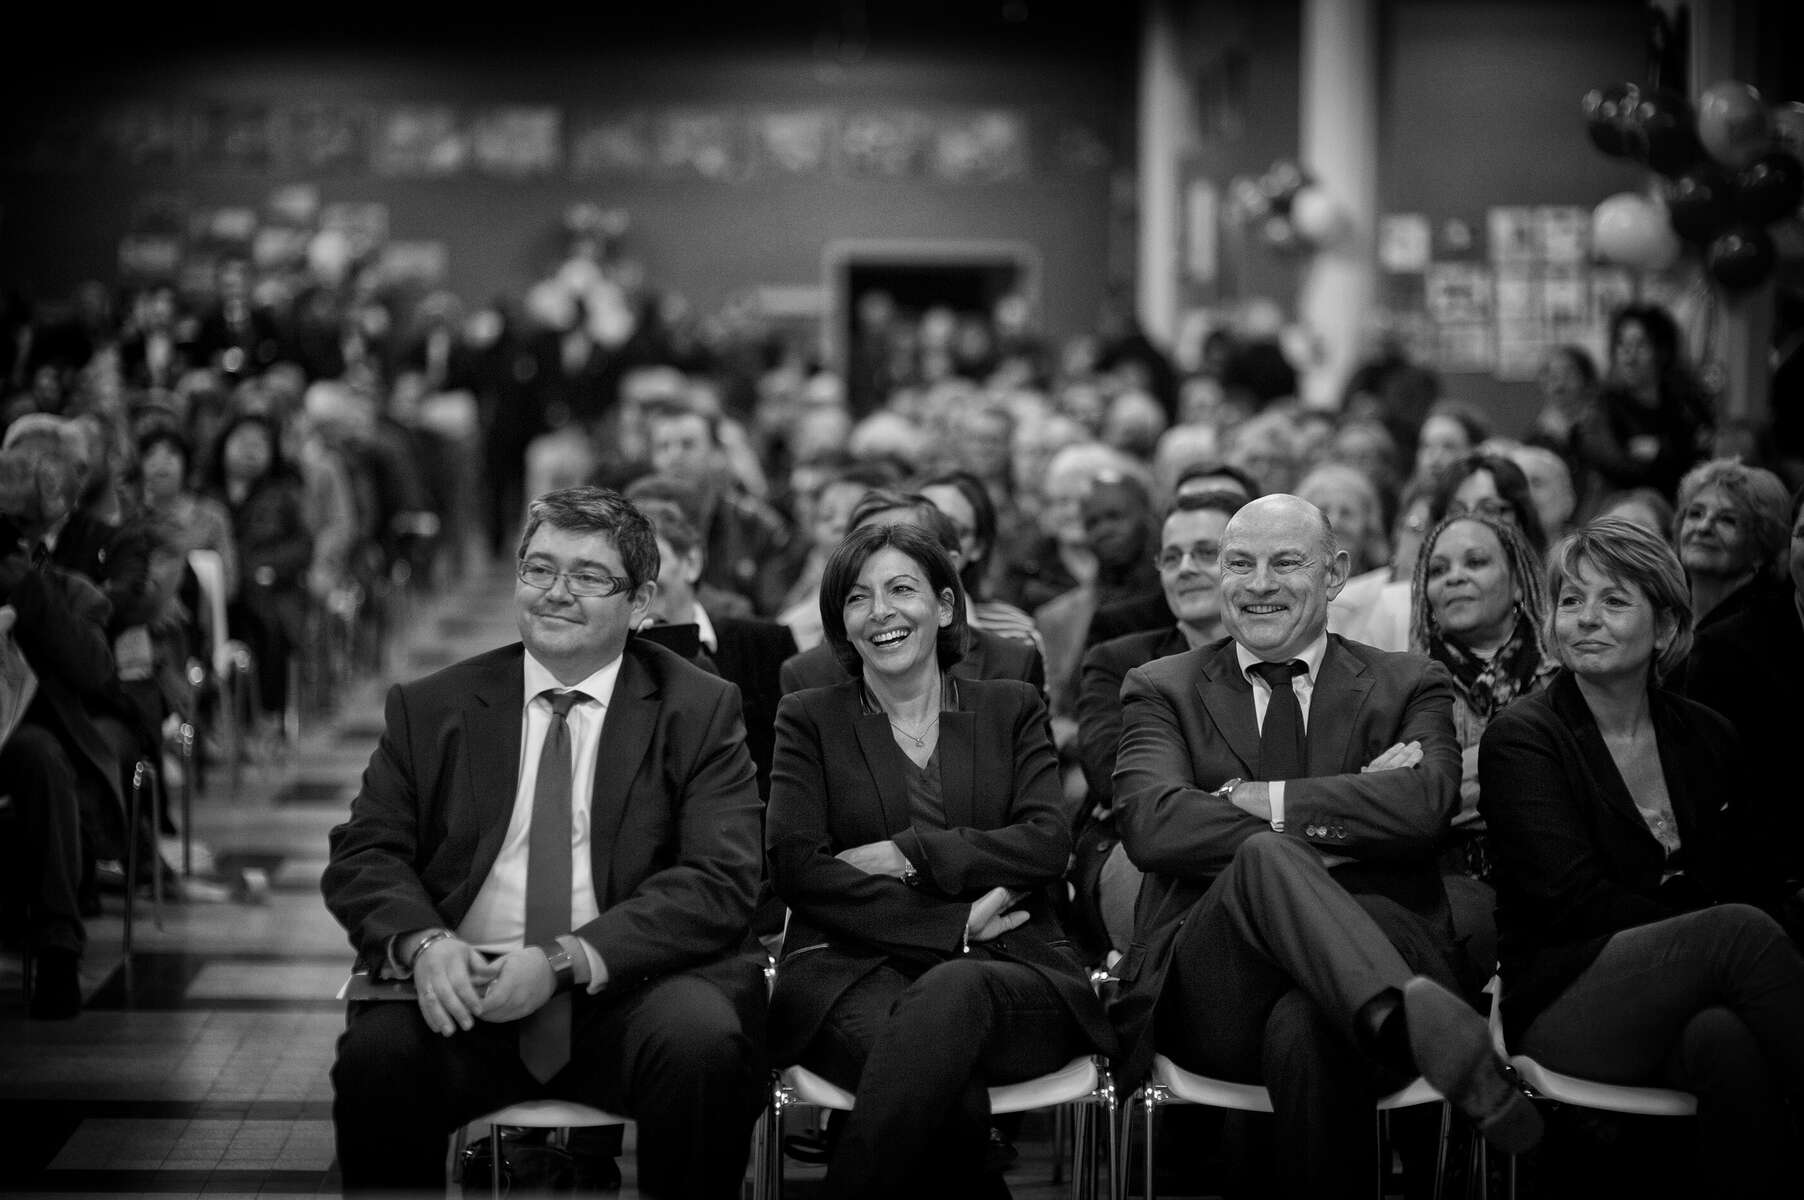 March 11, 2014.  PARIS, FRANCE- Mayoral candidate Anne Hidalgo attends a campaign event at Ecole Rouge in Paris' 13th Quarter.  For the first time in France's history, Paris will have a woman as a mayor - either Socialist Anne Hidalgo or Center-Right Nathalie Kosciusko-Morizet.  Photo by Scout Tufankjian